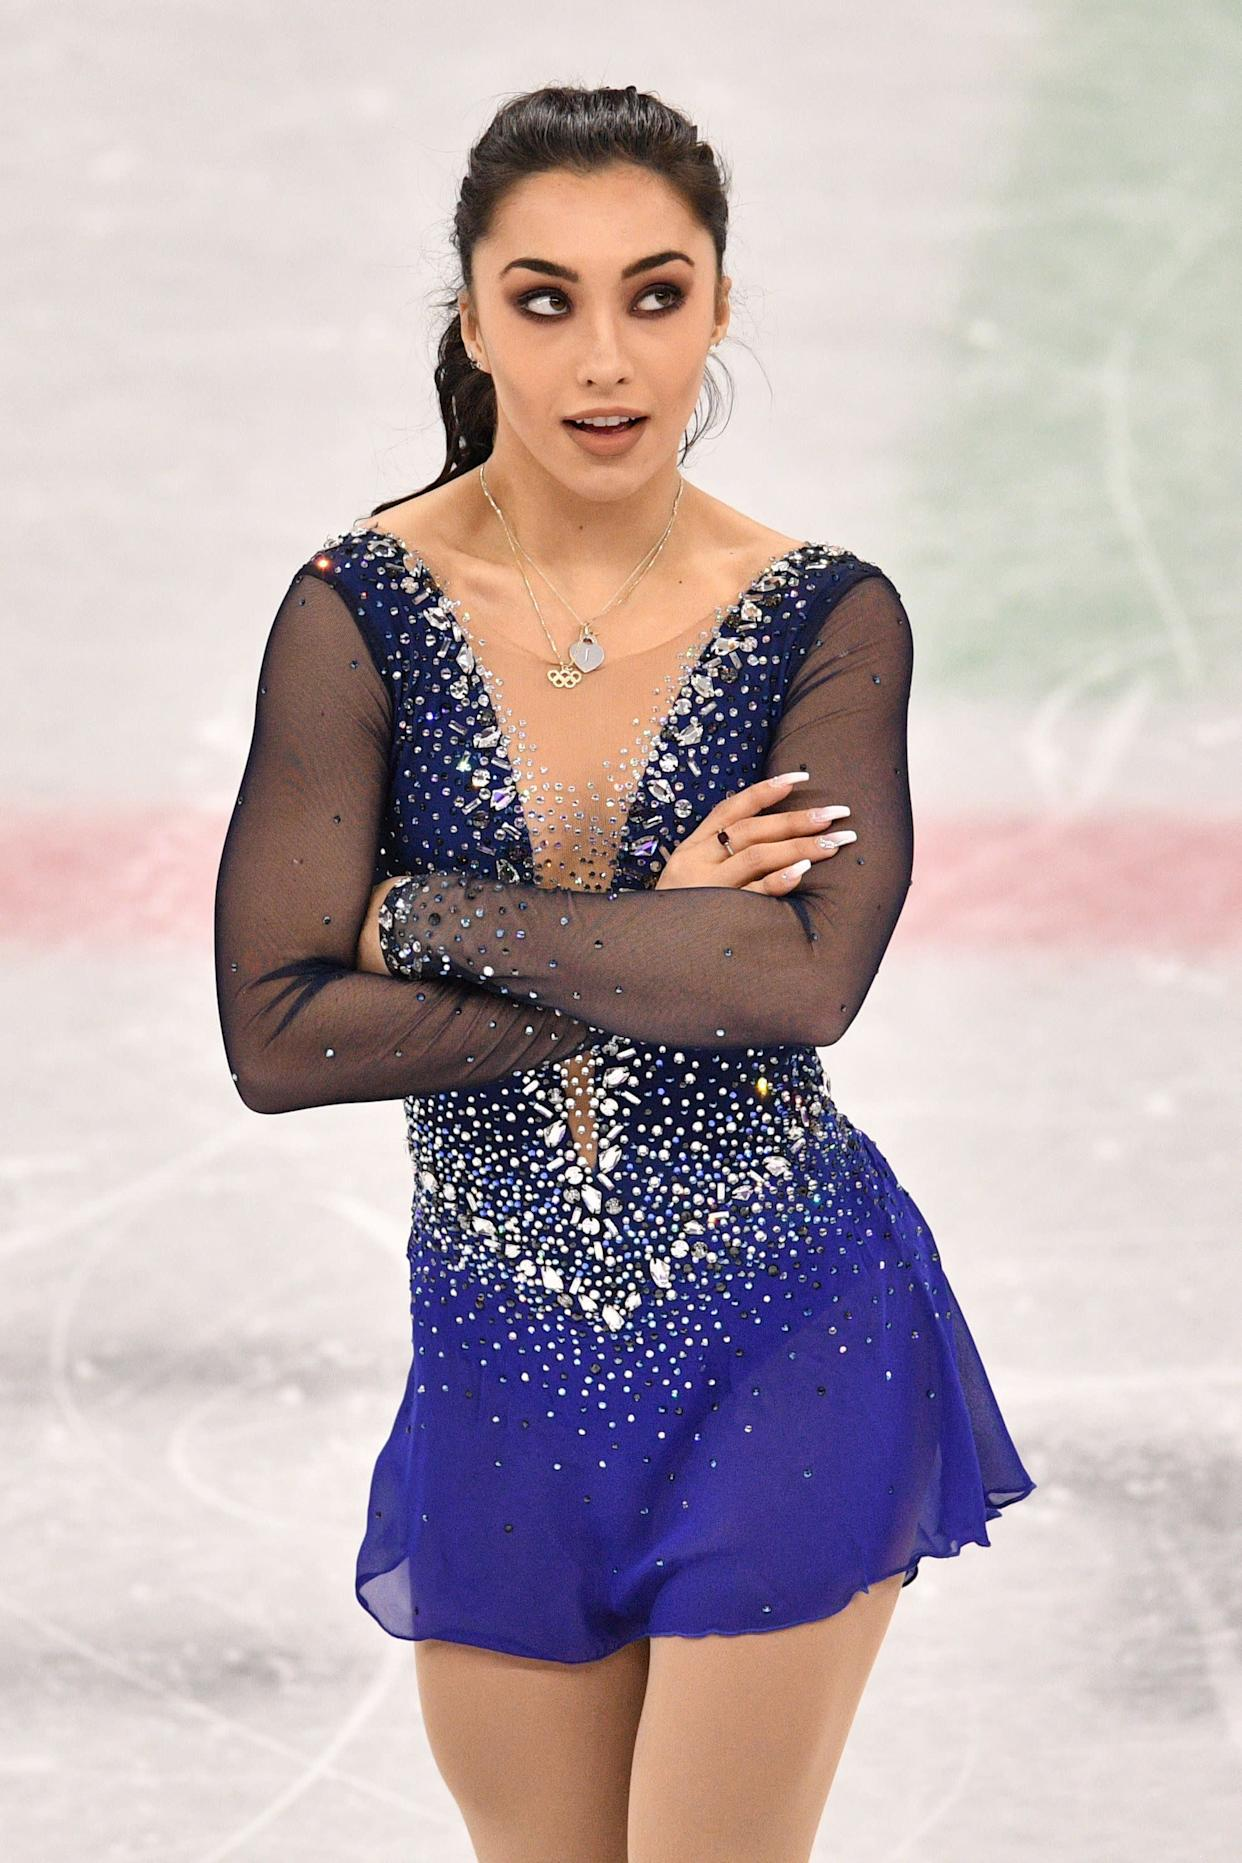 The Canadian skater's sparkly blue number, which she wore for her free skate during the single and team events, really was striking, but can we just take a minute to appreciate her full-on glam beauty look?